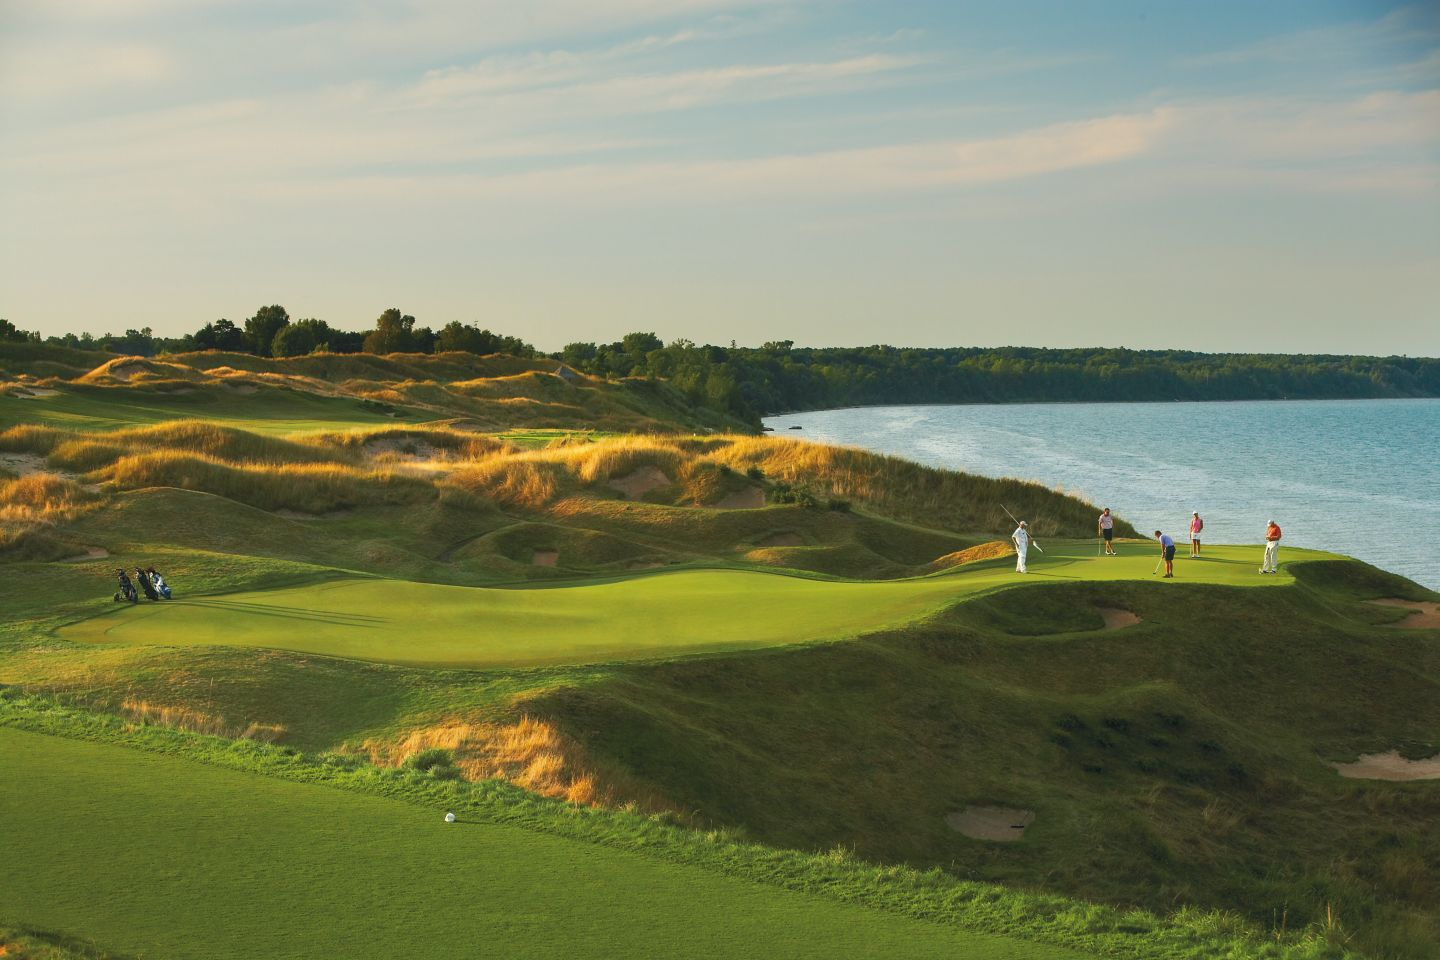 Golfers on the green at Whistling Straits